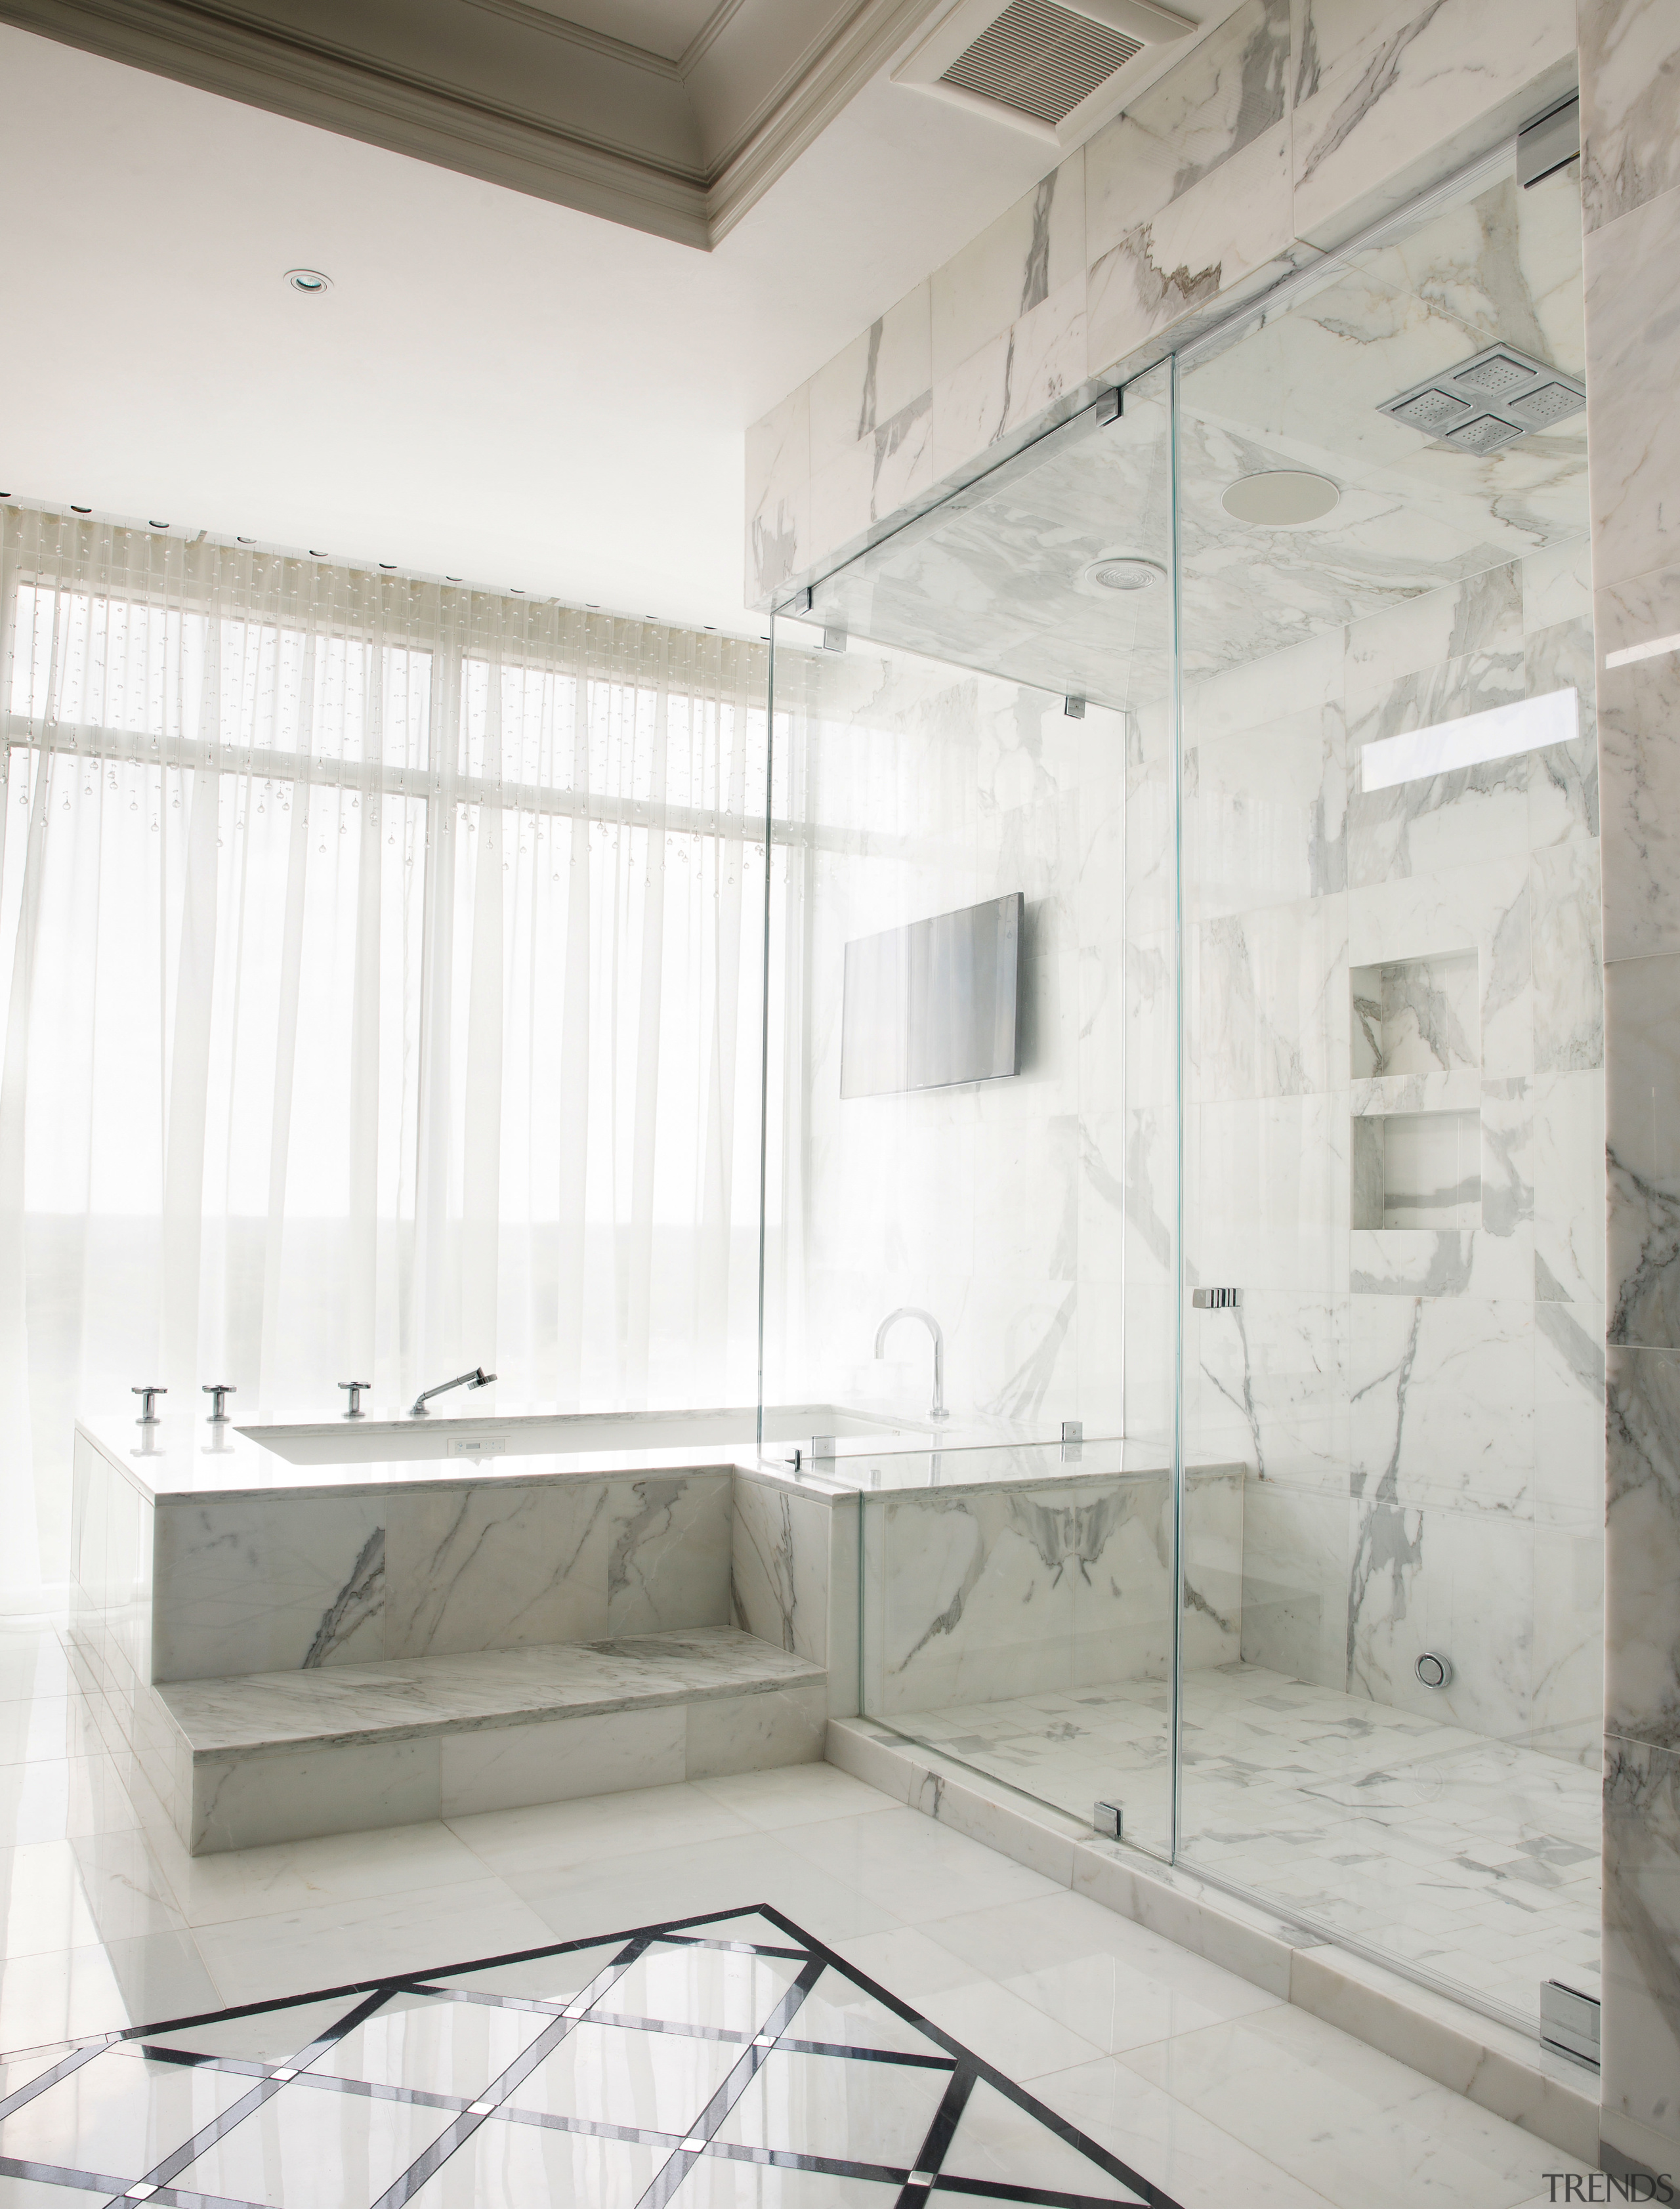 Strong geometric forms and a glass shower stall architecture, bathroom, floor, flooring, interior design, plumbing fixture, product design, room, tile, white